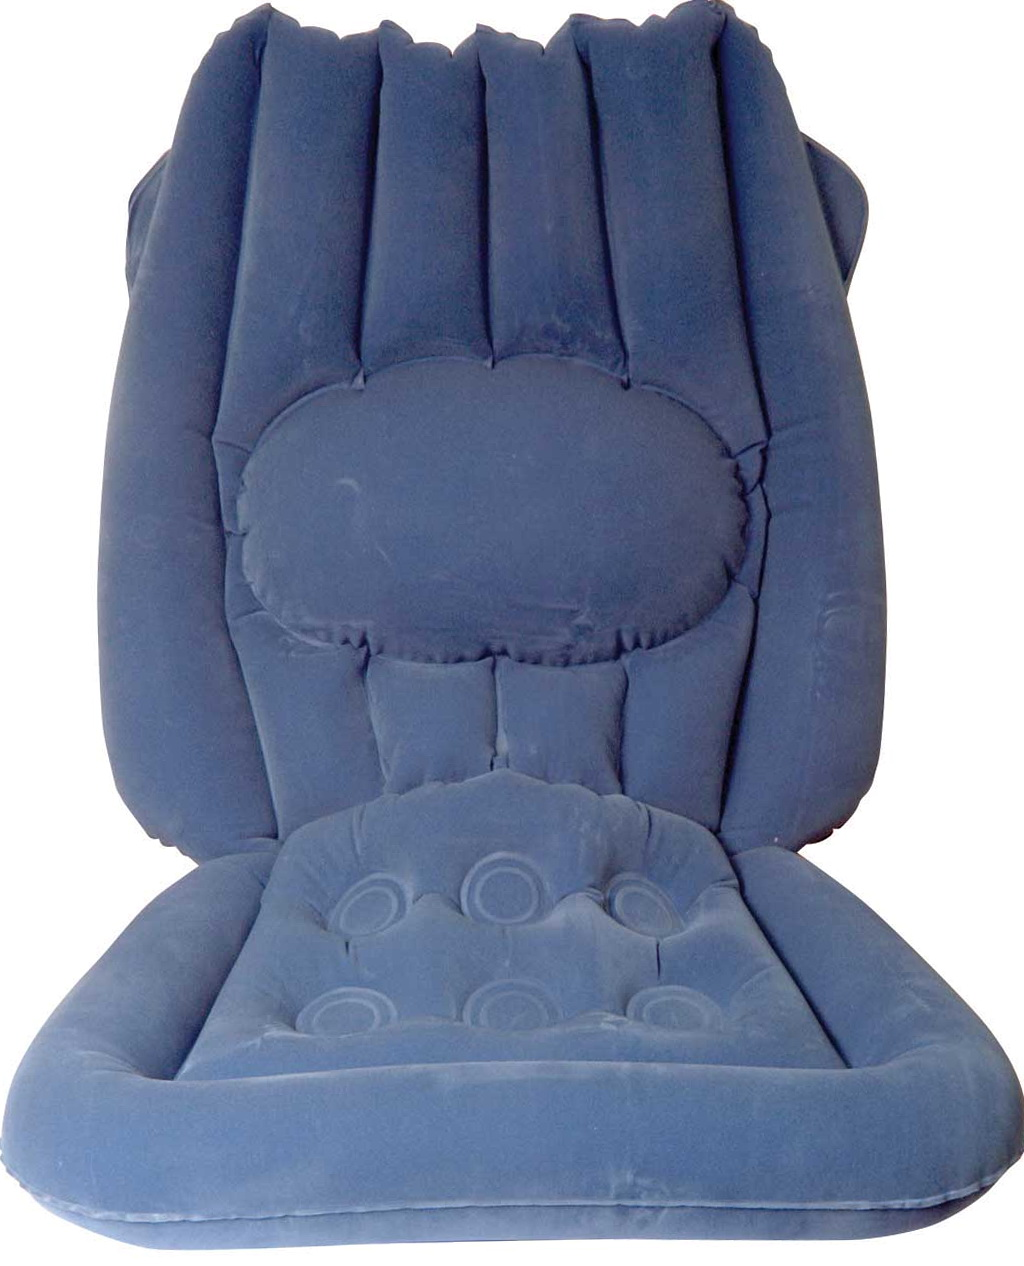 Best Car Seat Cushions For Back Pain